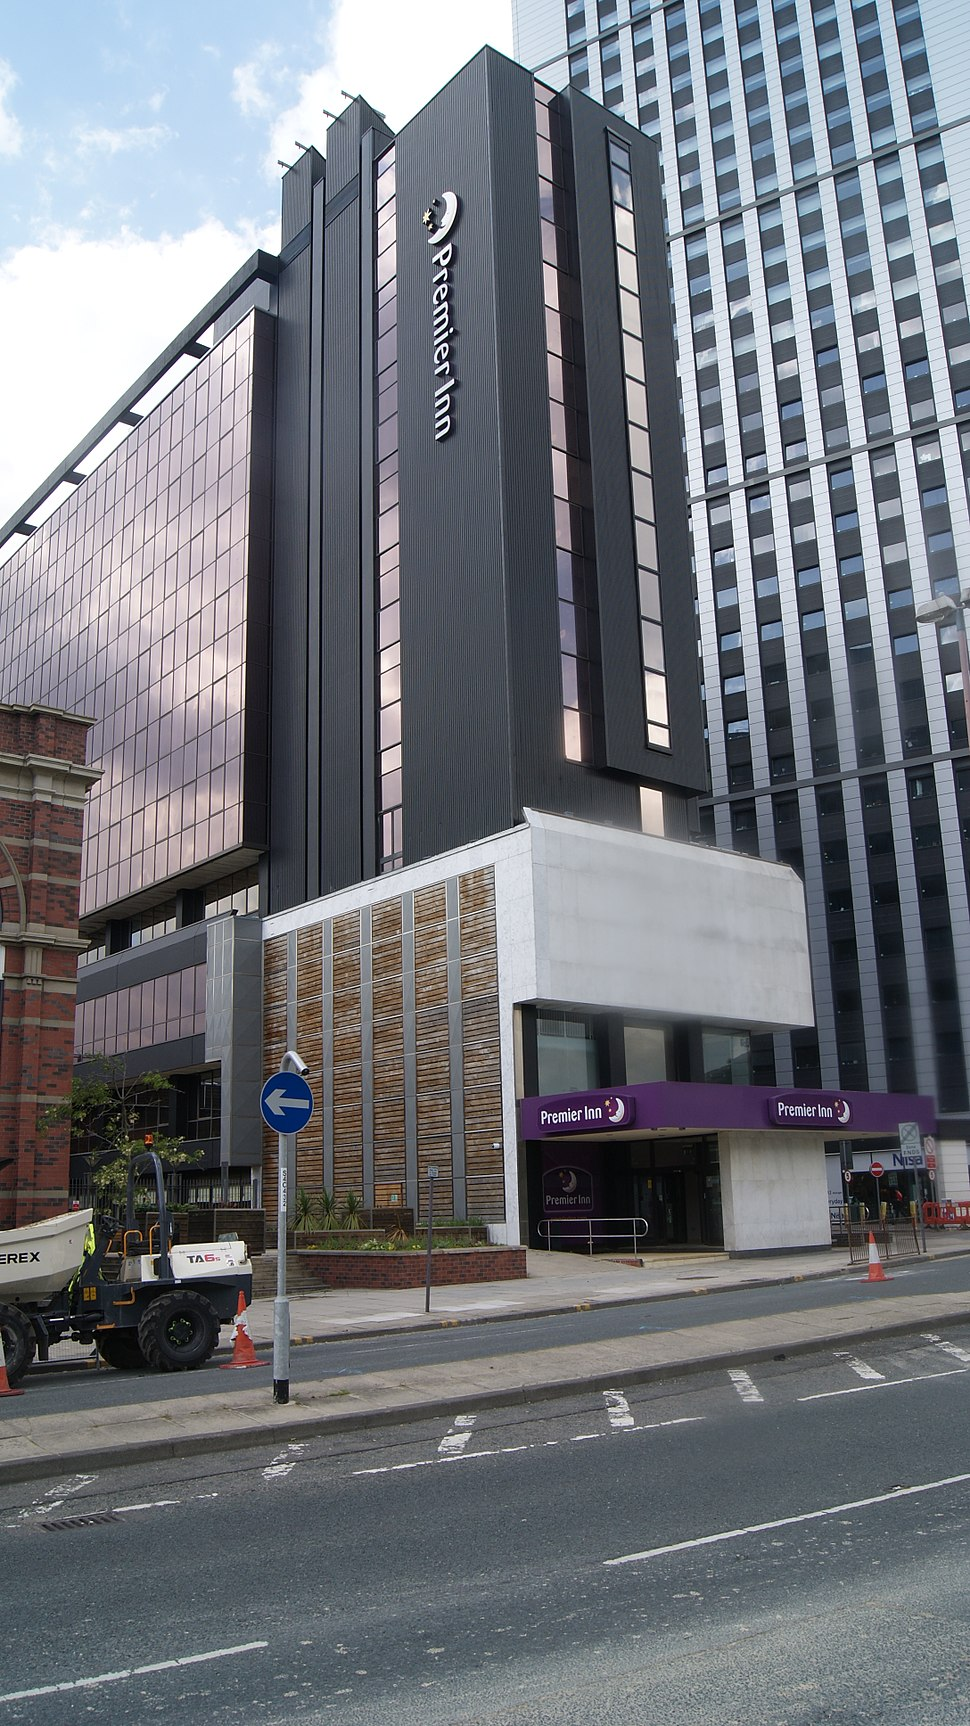 Premier Inn and Sky Plaza, Clay Pit Lane, Leeds (20th June 2012)